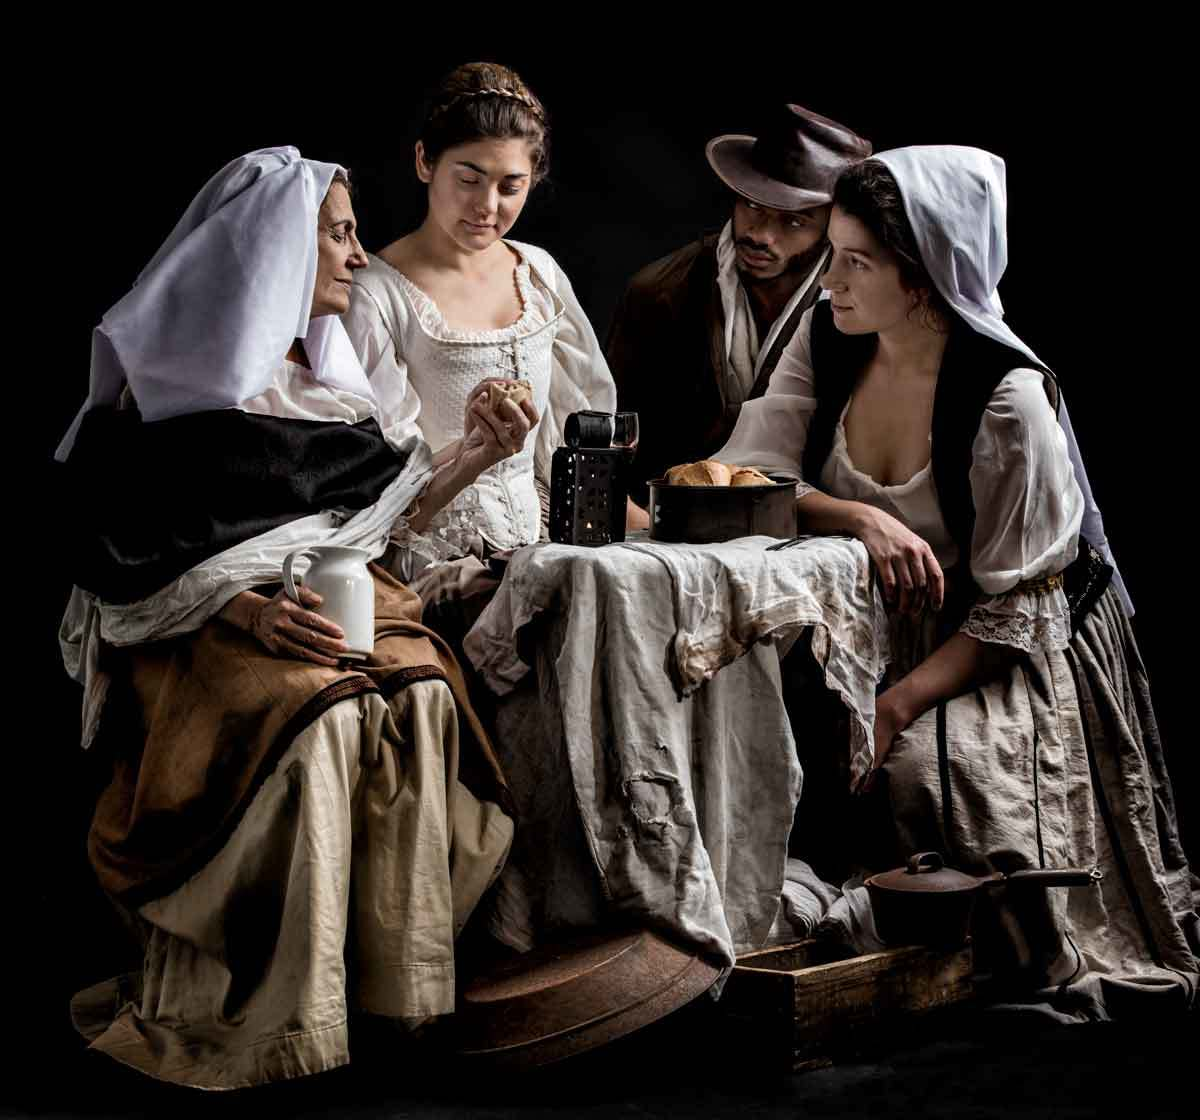 Fine art photography in studio inspired by Le Peasant family by Louis Le Nain